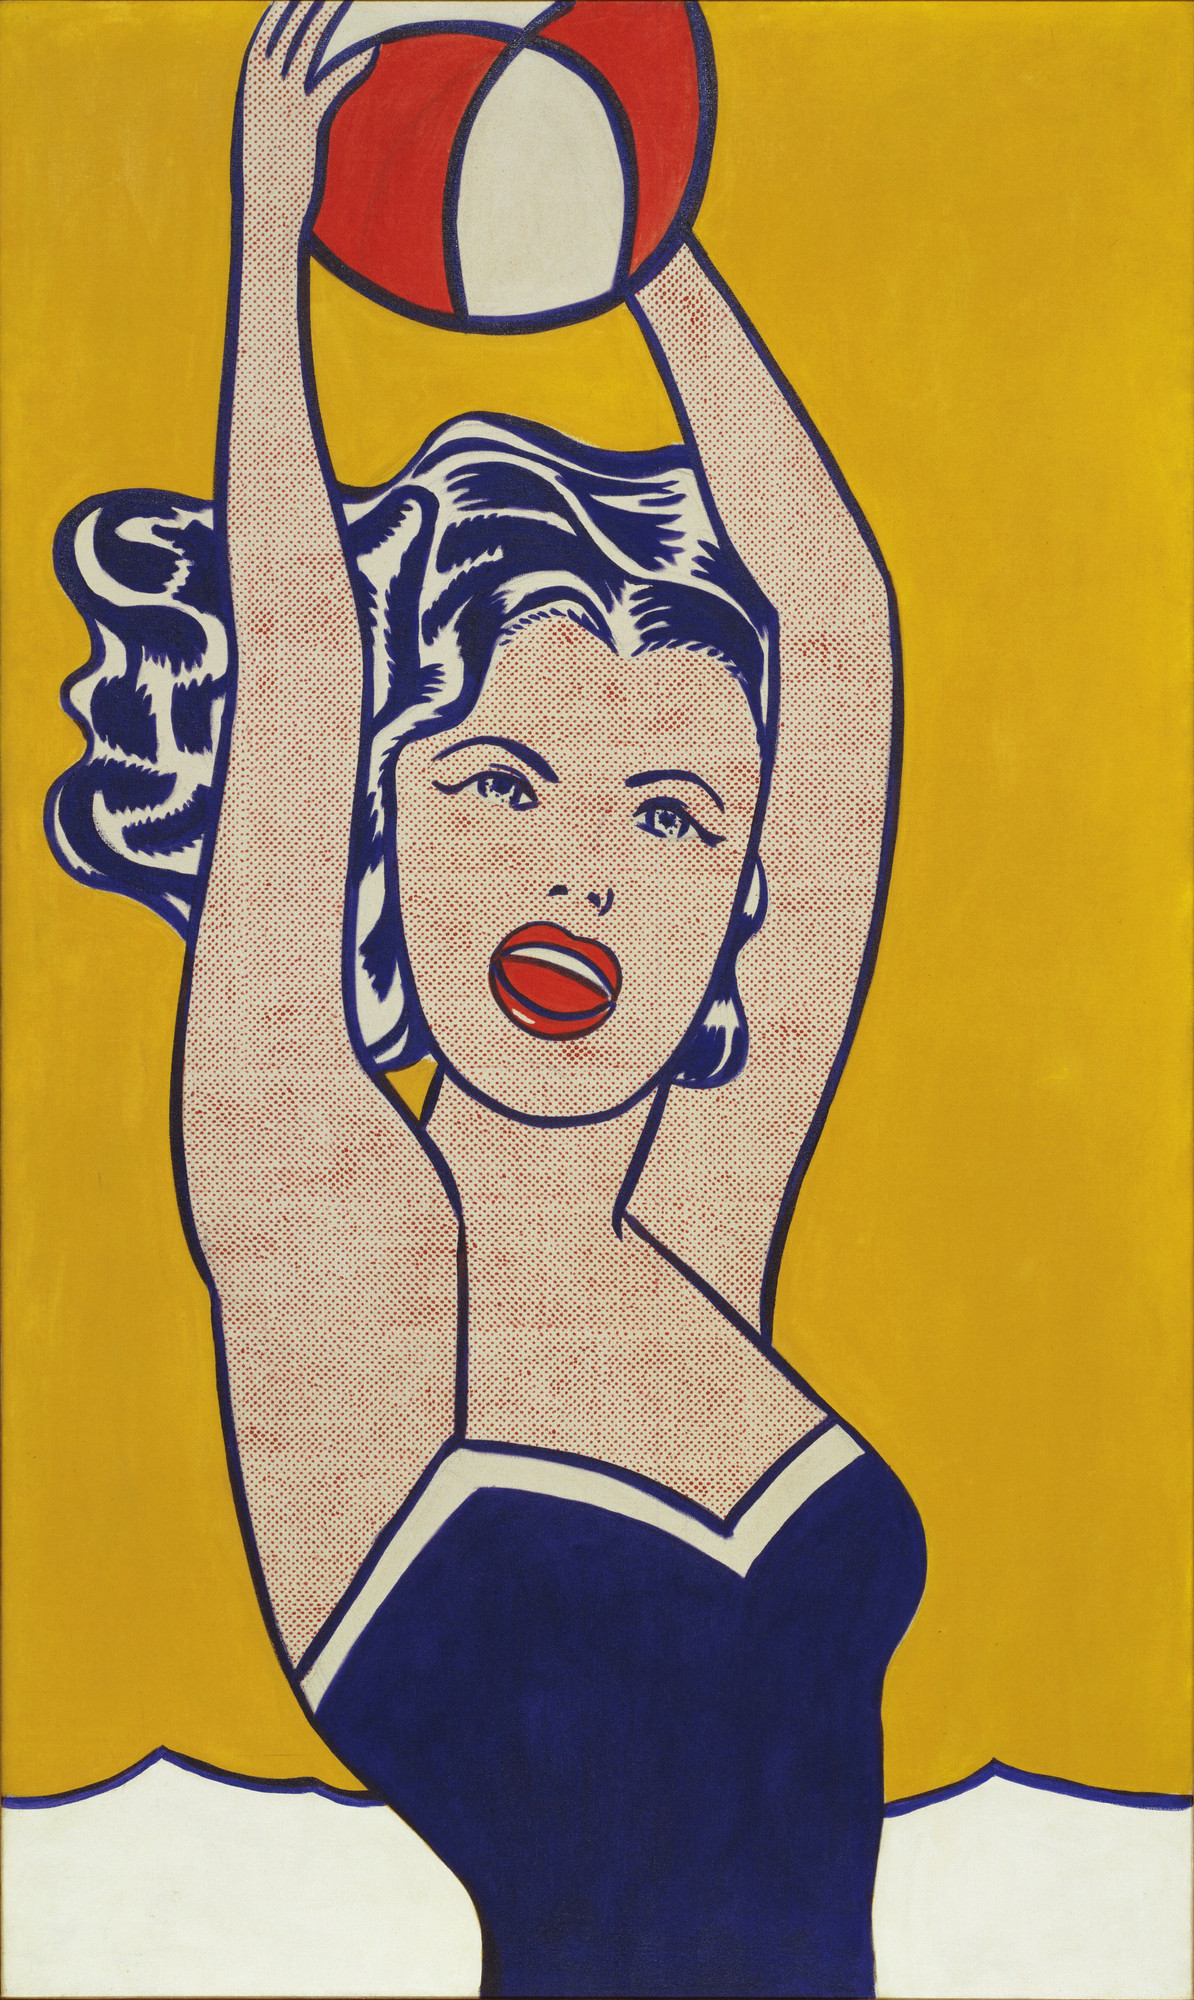 Roy Lichtenstein. Girl with Ball. 1961. Oil on canvas, 60 1⁄4 × 36 1/4″ (153 × 91.9 cm). Gift of Philip Johnson